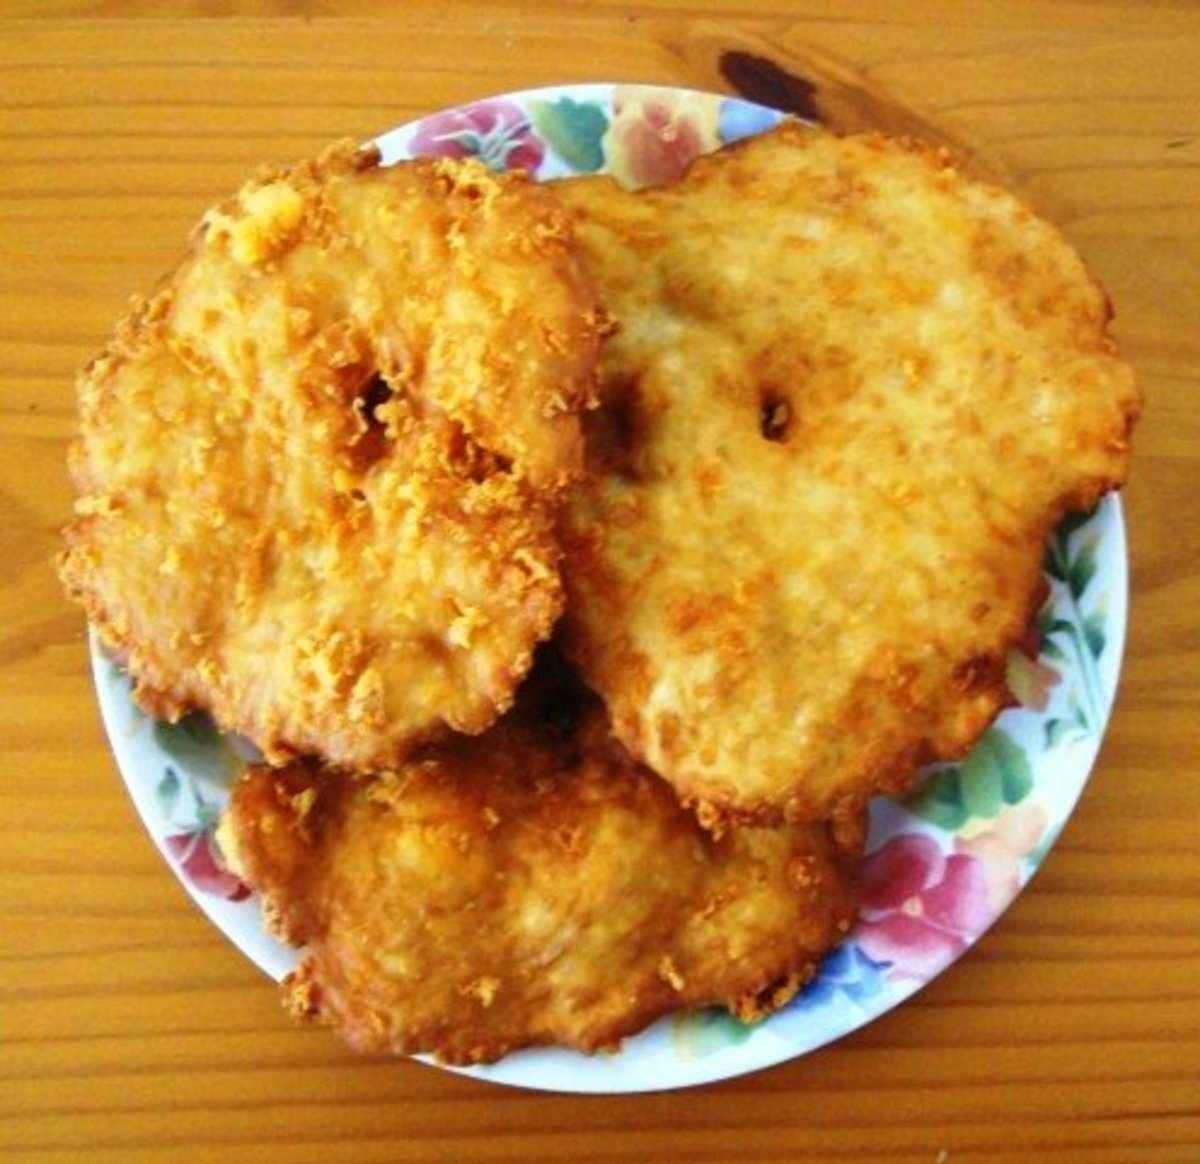 Cooked cheese fry bread, crispy and delicious.